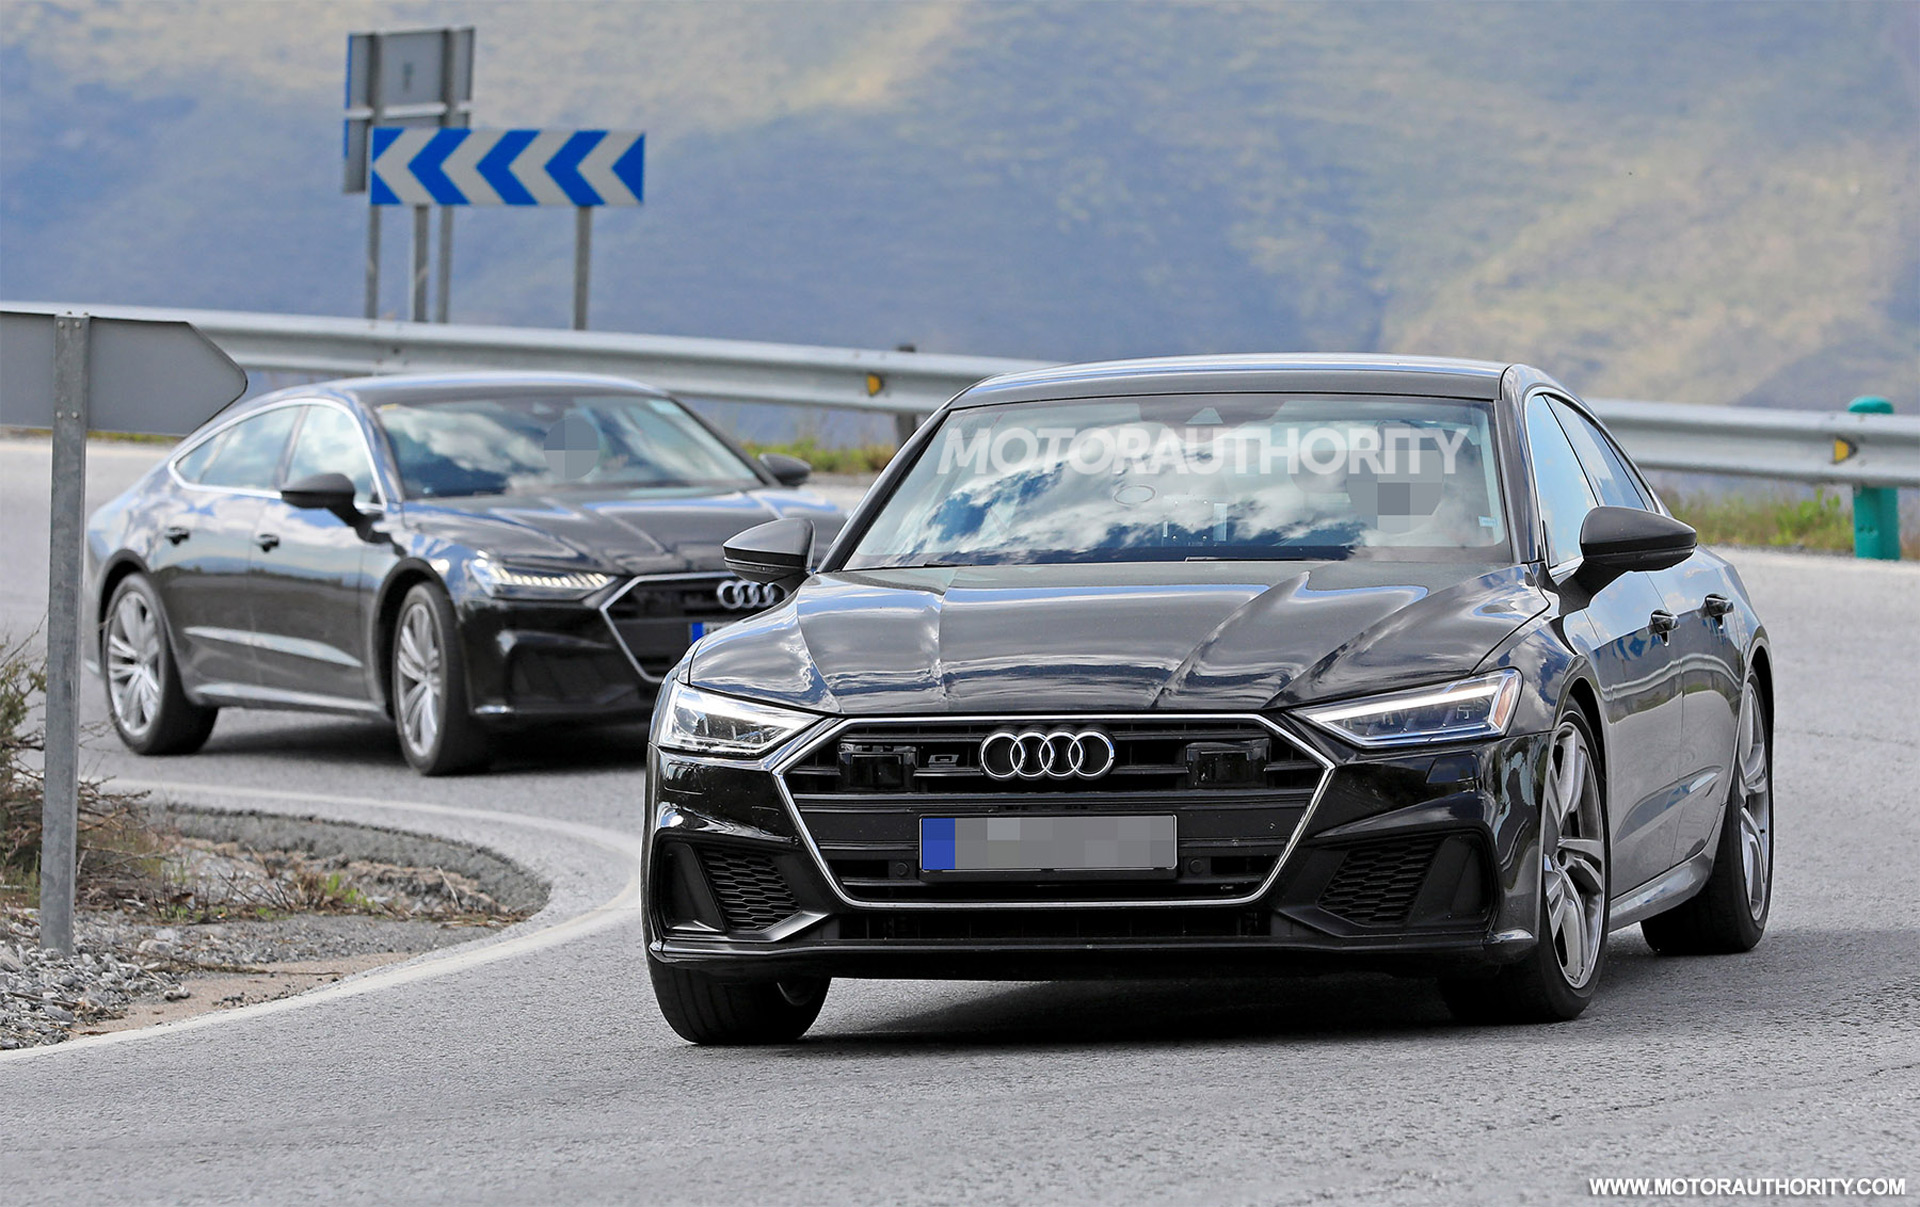 ענק 2019 Audi S7 spy shots and video SD-38